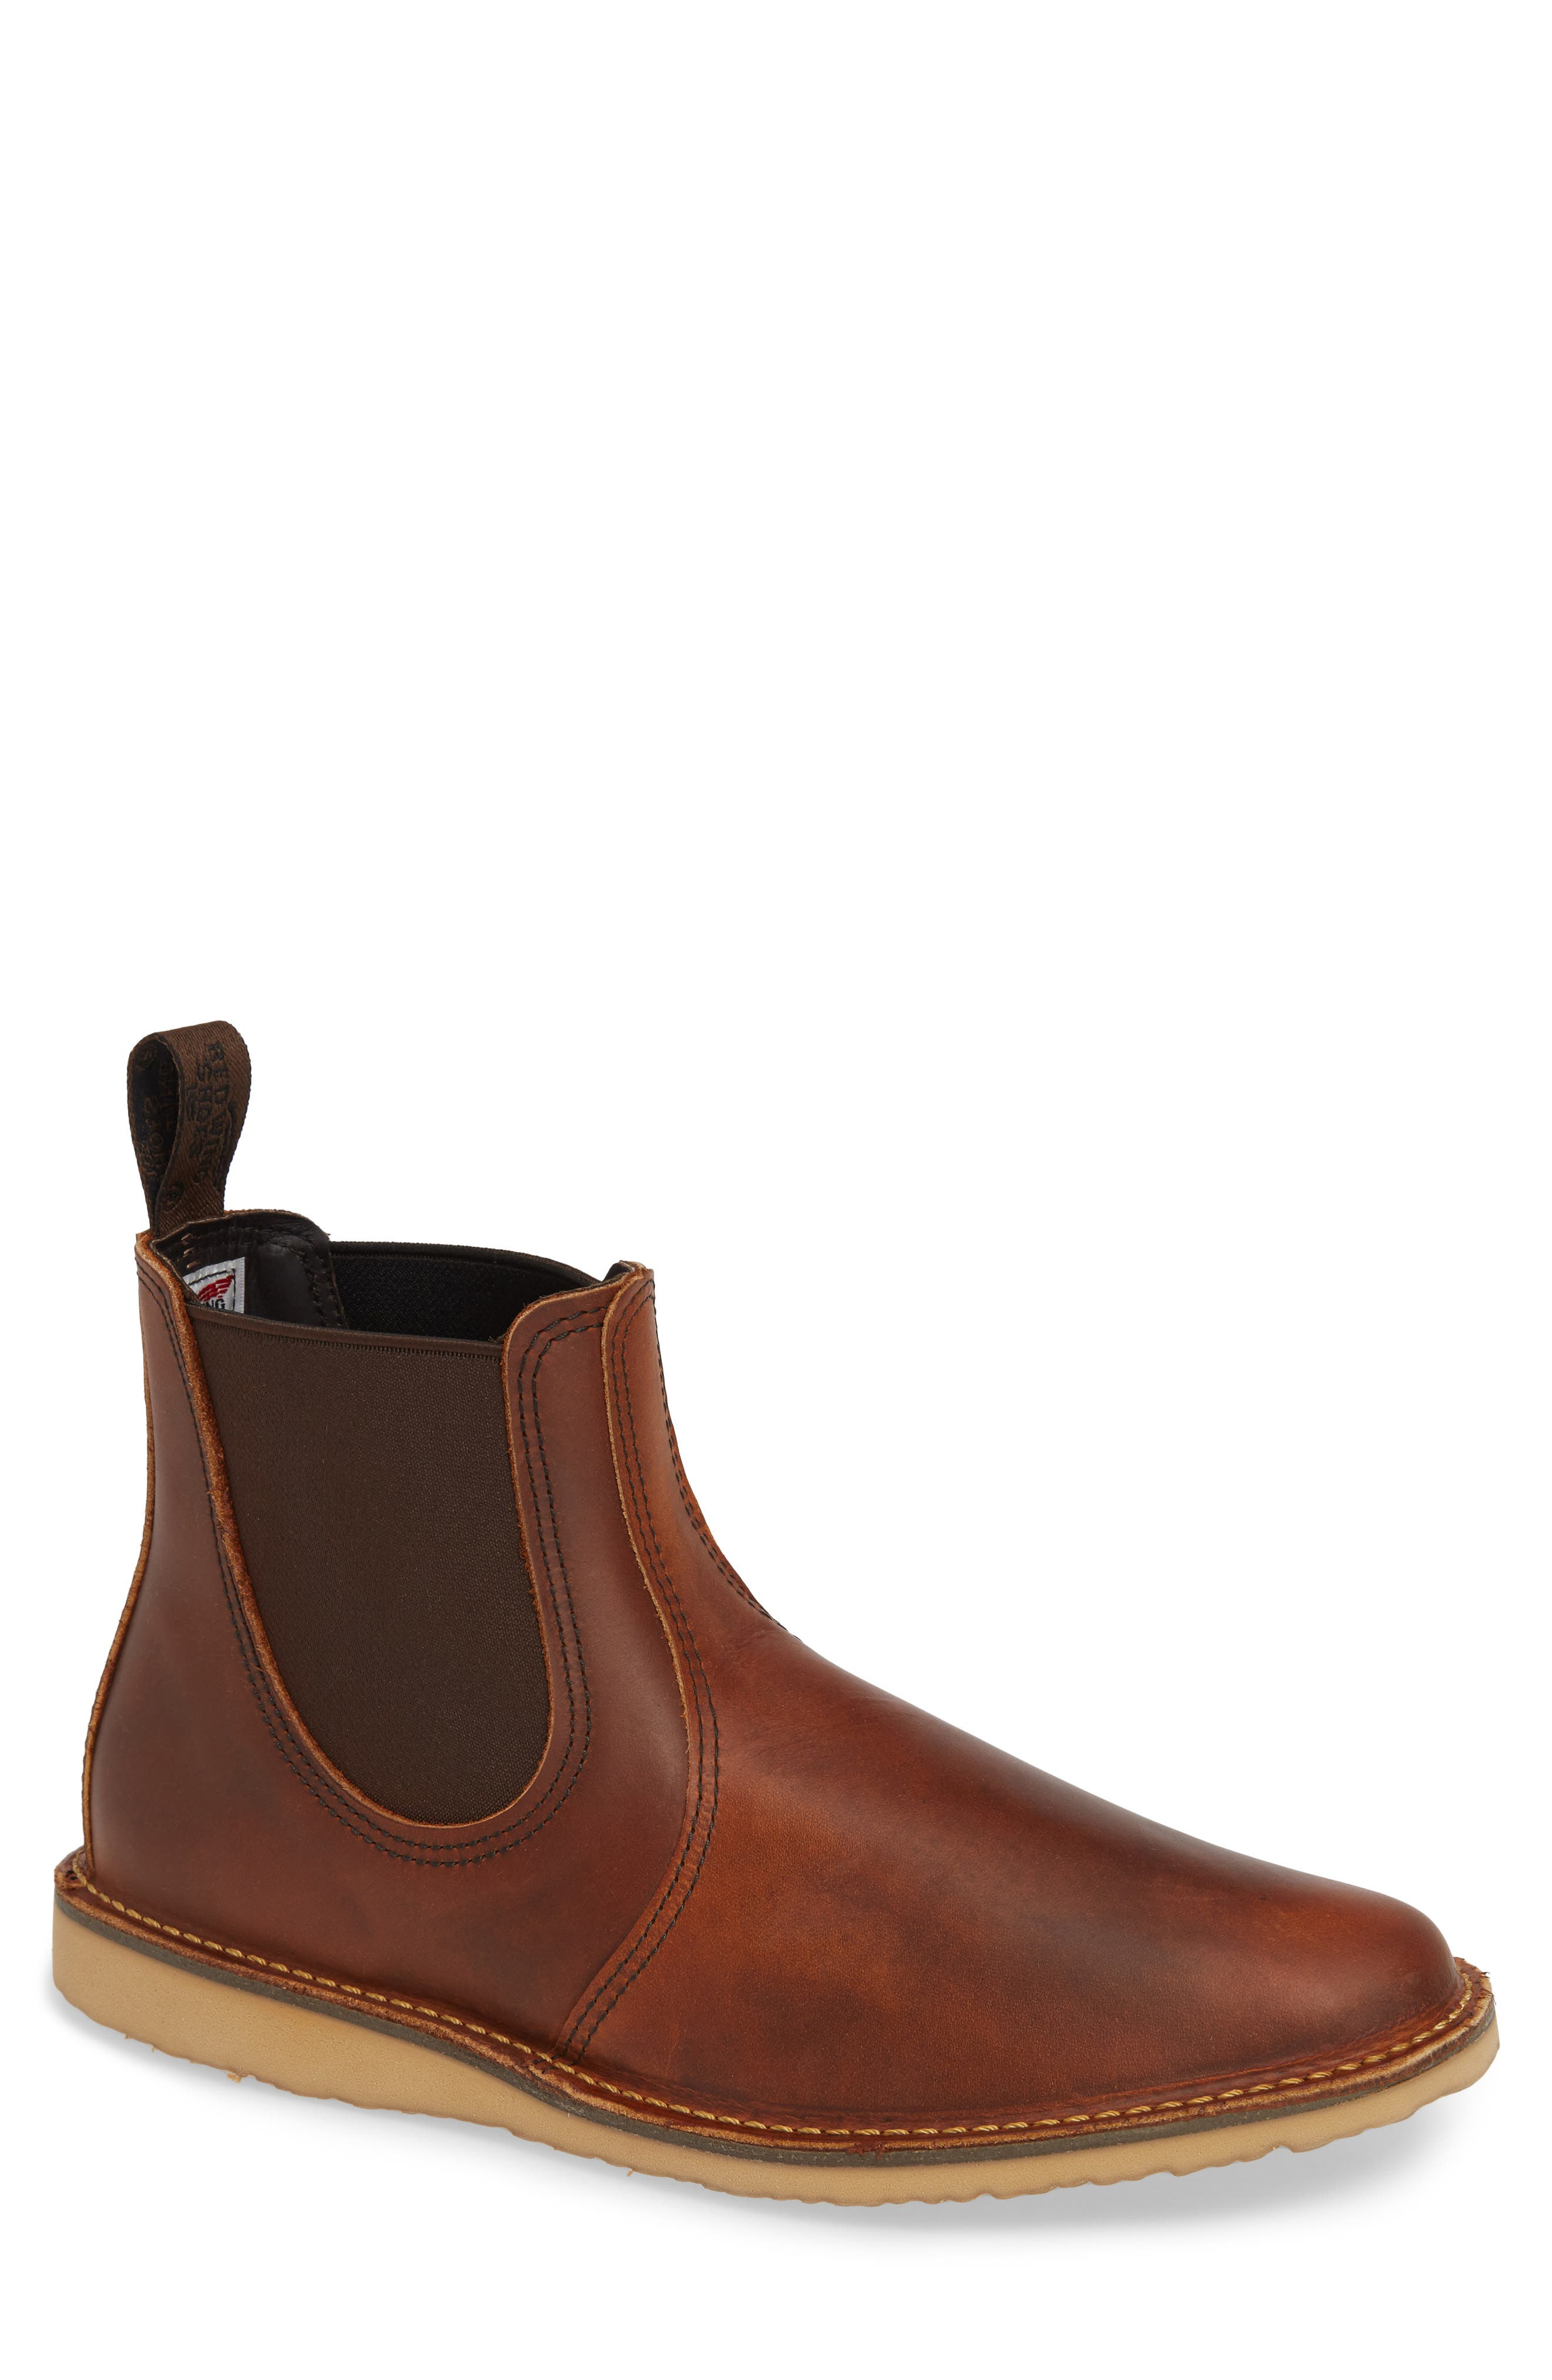 Red Wing Chelsea Boot- Brown